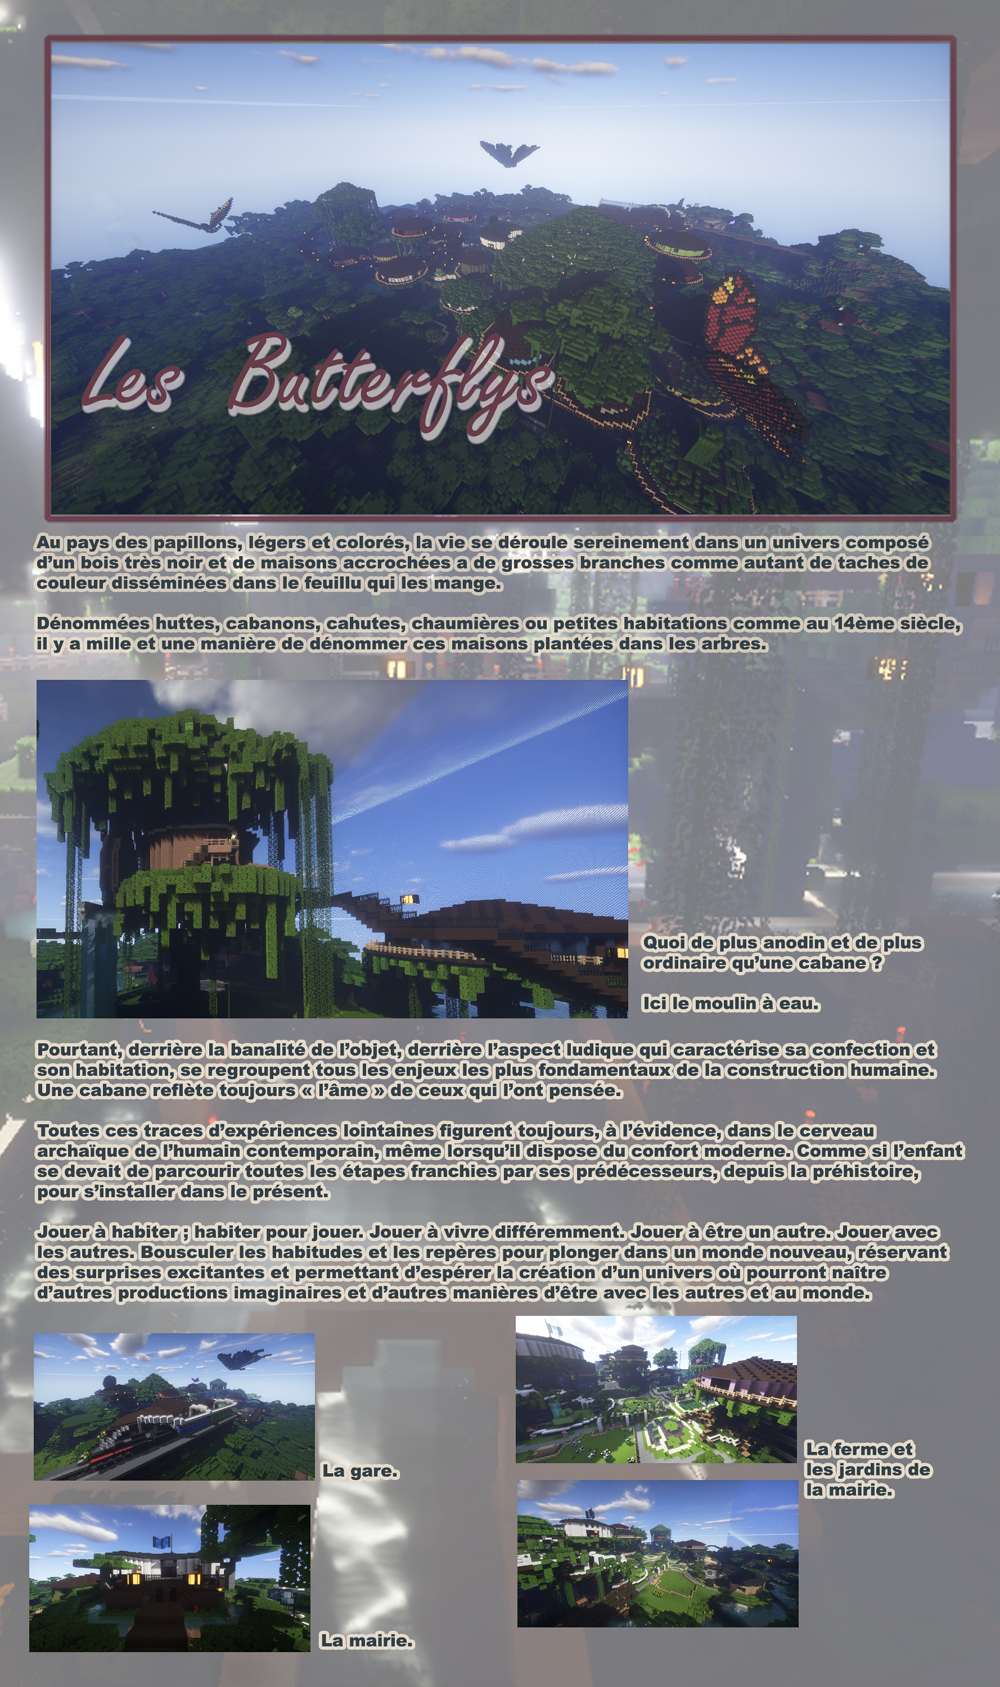 [Archive] Village des Butterflys - Menka - seconde présentation 289632prsentationseconde